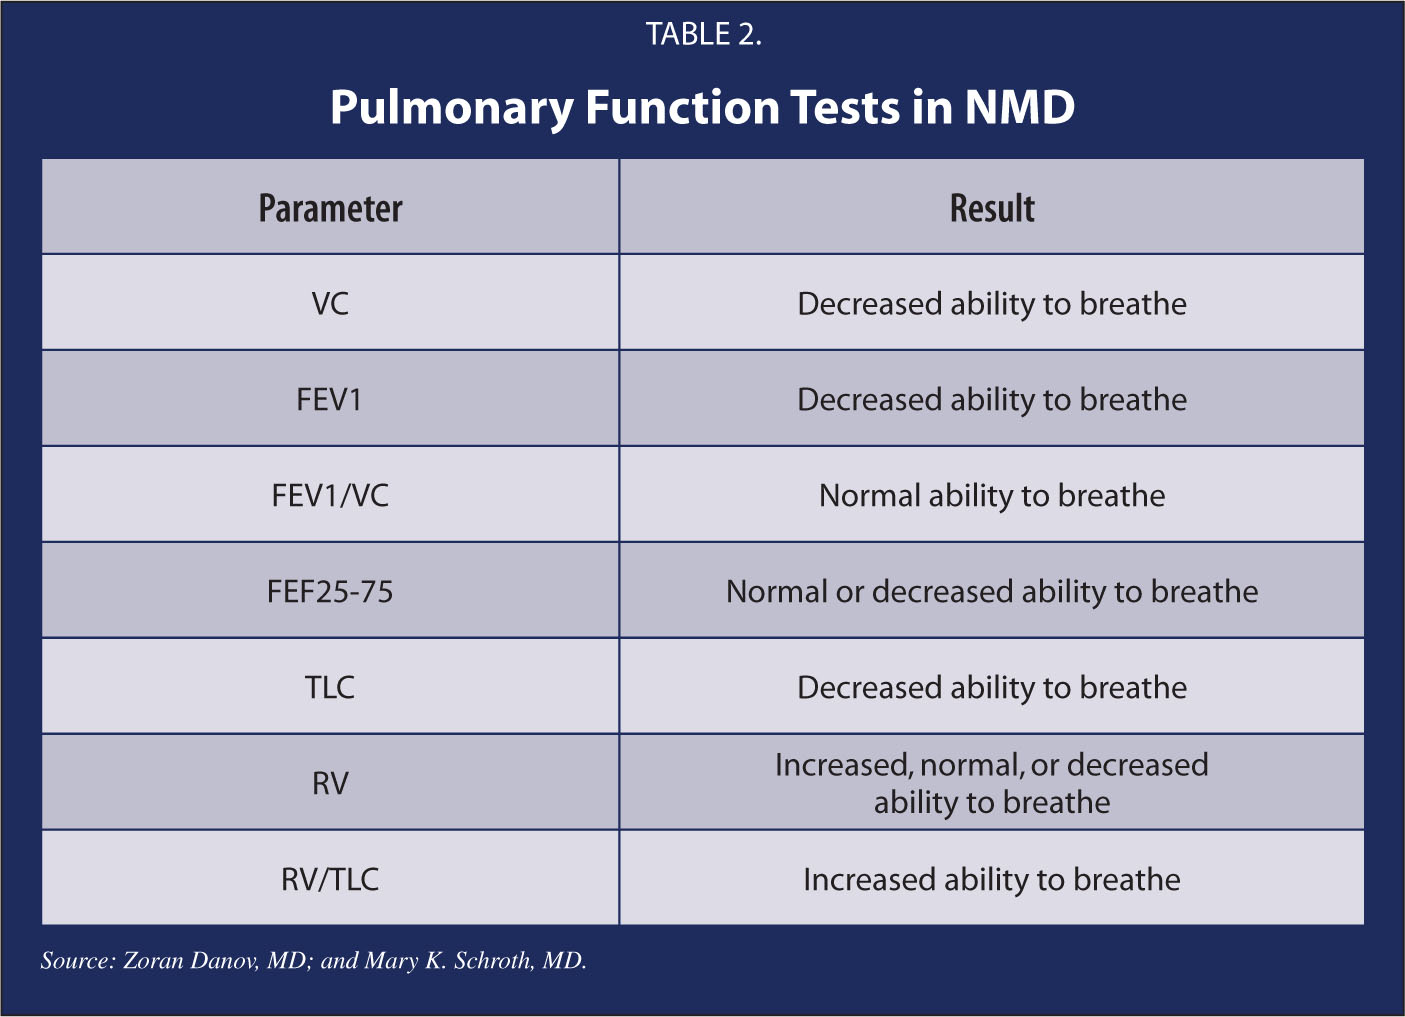 Pulmonary Function Tests in NMD